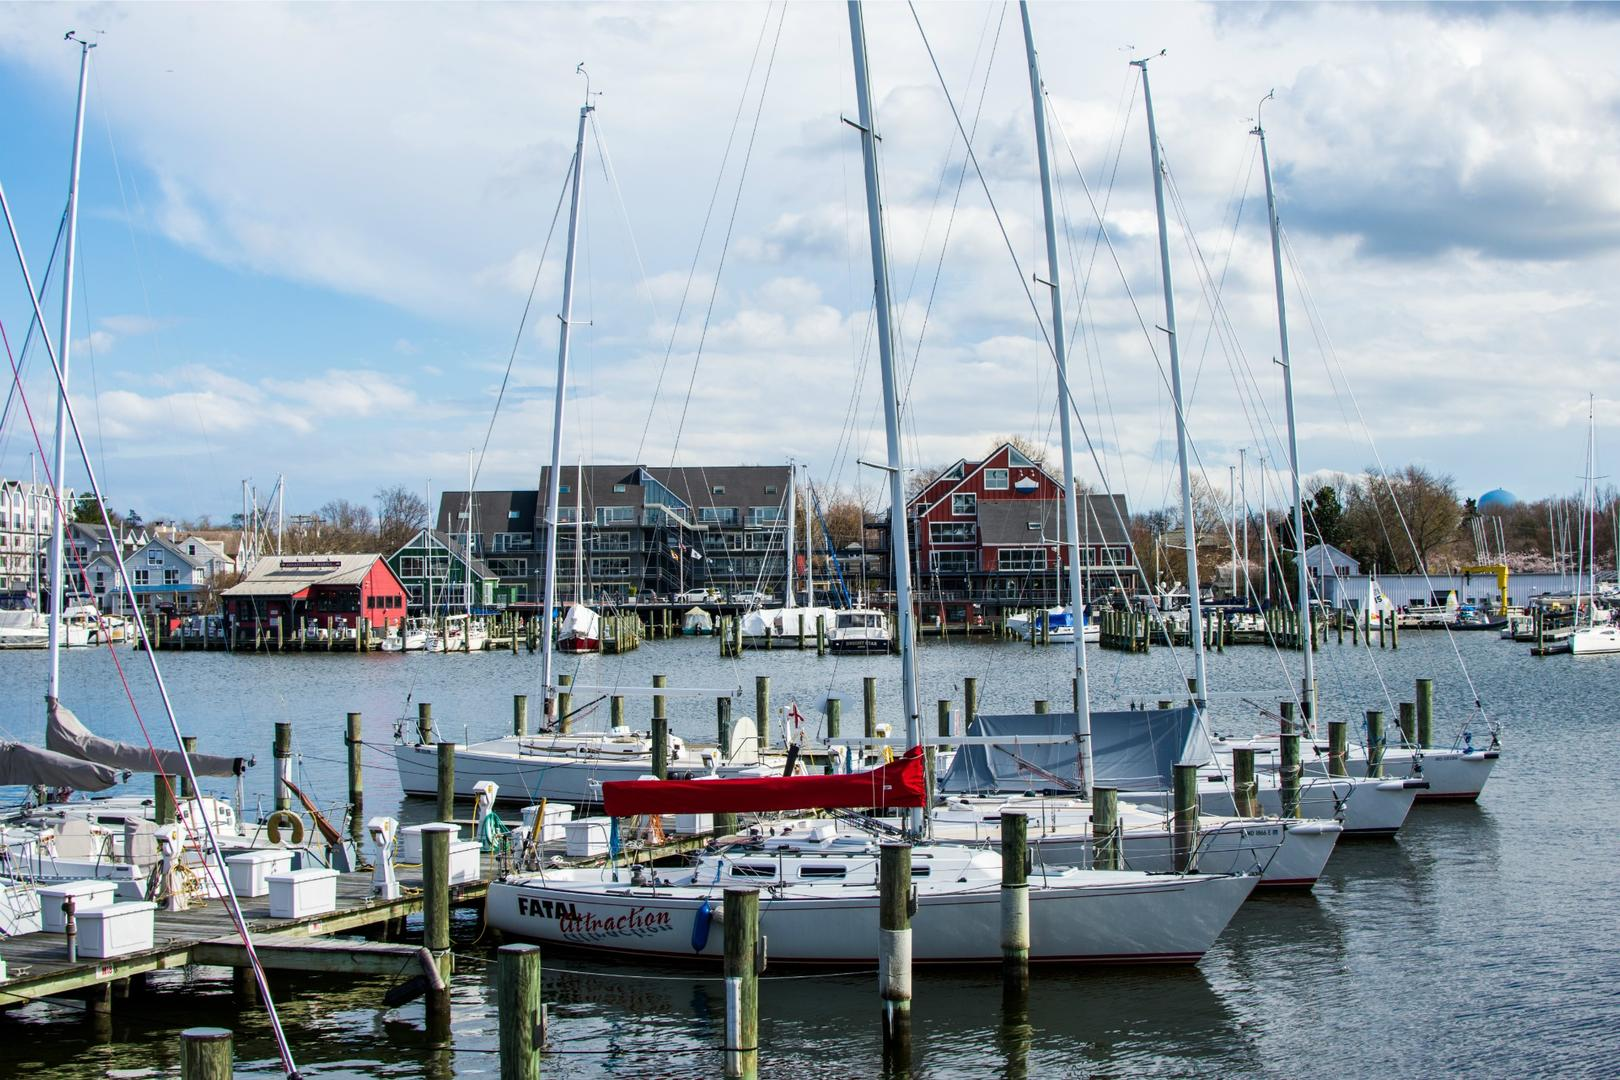 Nearby Annapolis Harbor